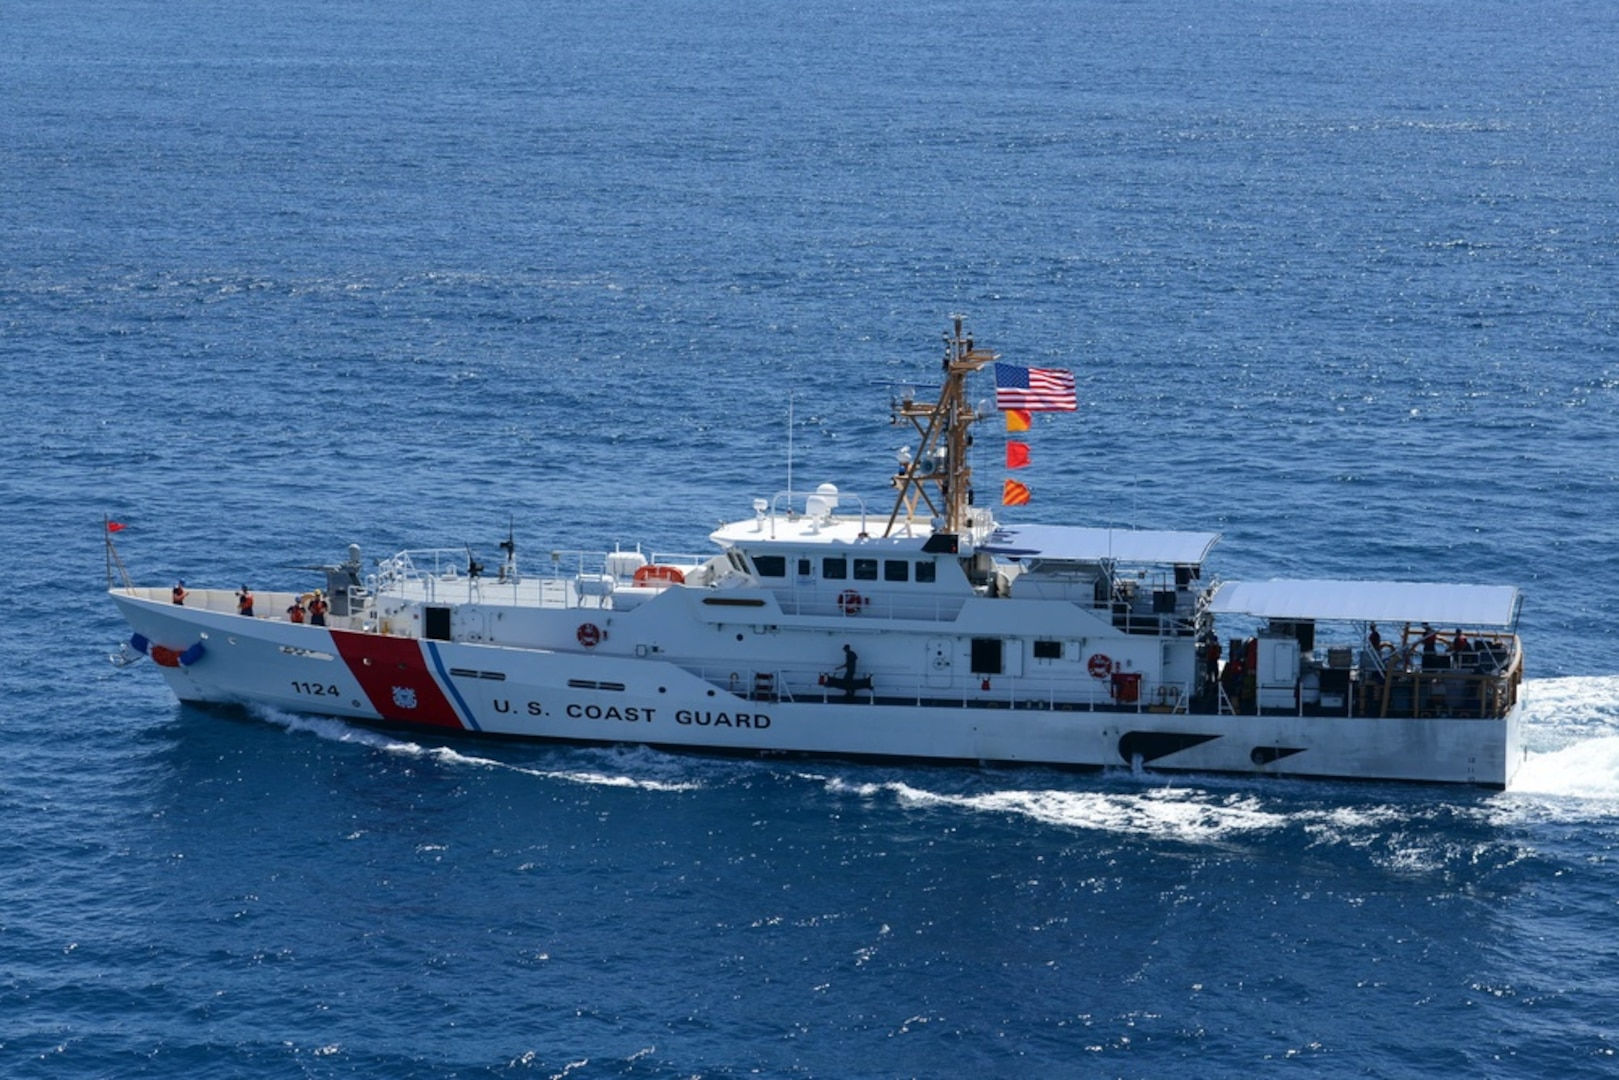 U.S. Coast Guard patrols international waters in an effort to strengthen maritime governance and foreign partnerships